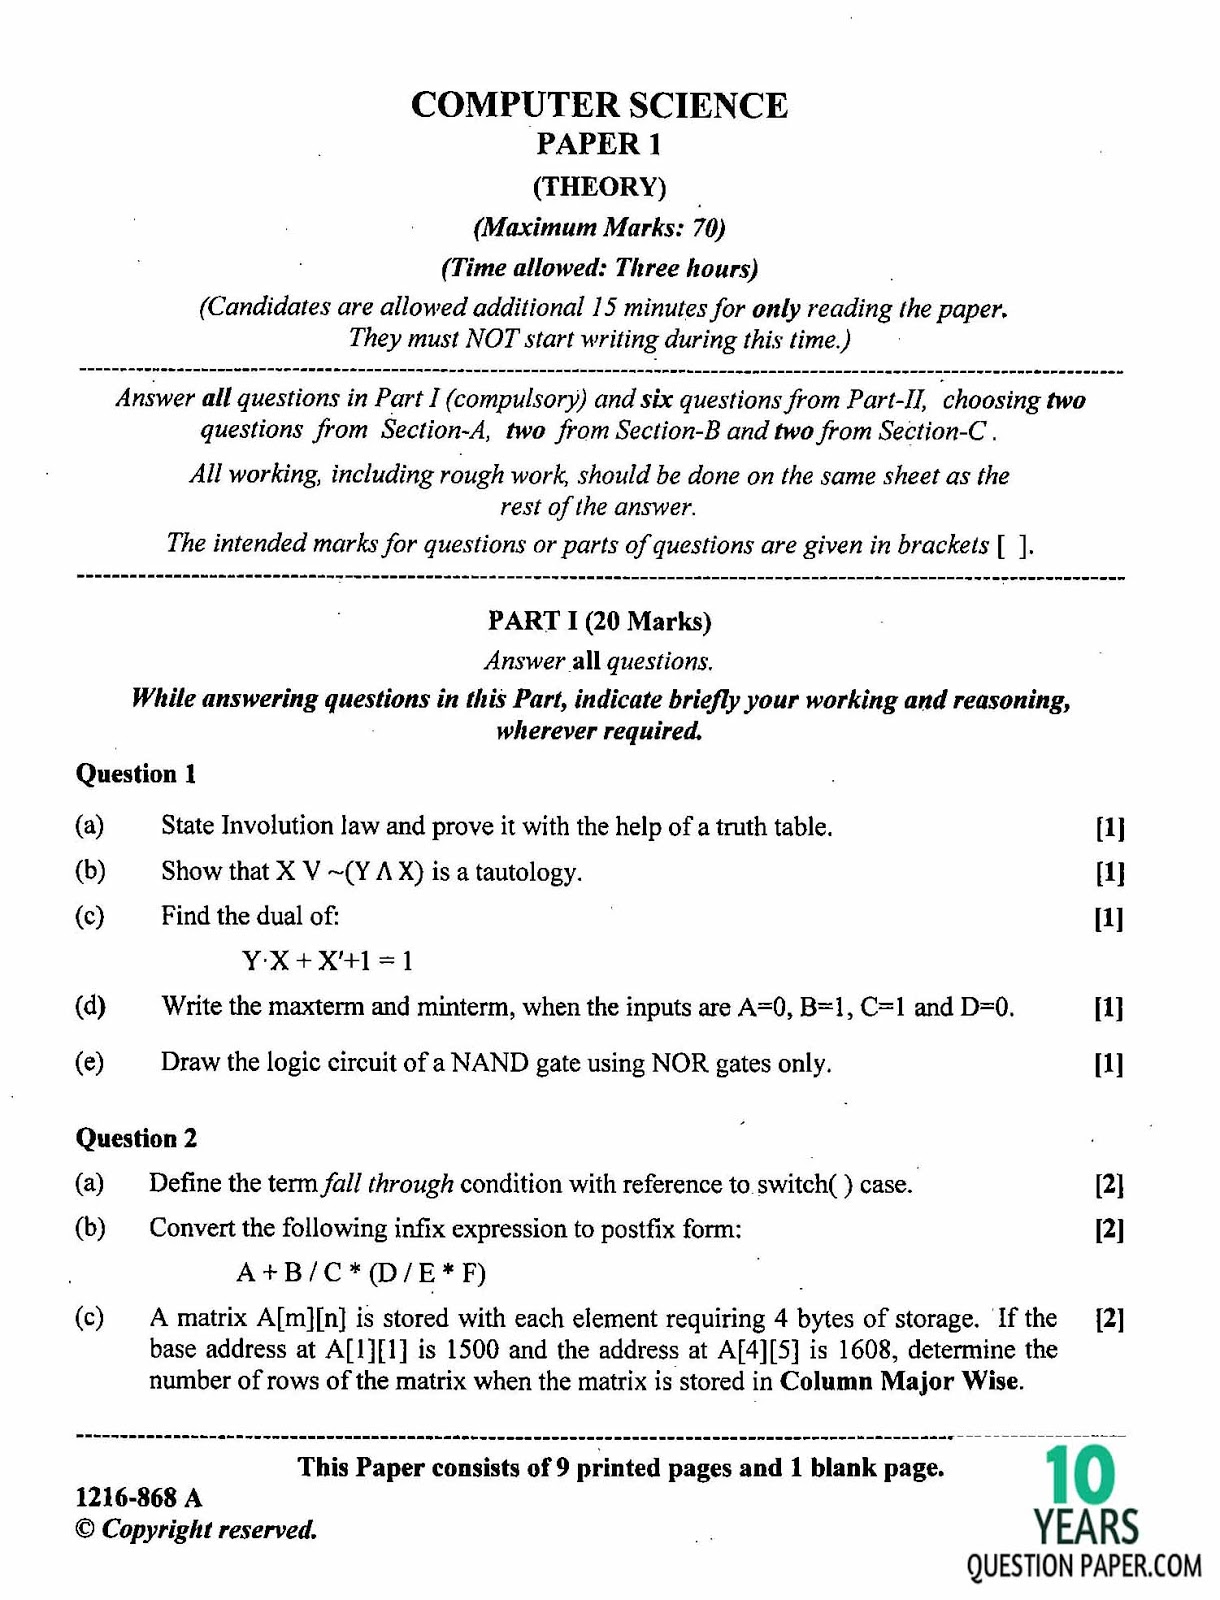 018 Research Paper Computer Science Papers Free Isc Science2b Theory Class Xii Board Question Breathtaking Download Pdf Full